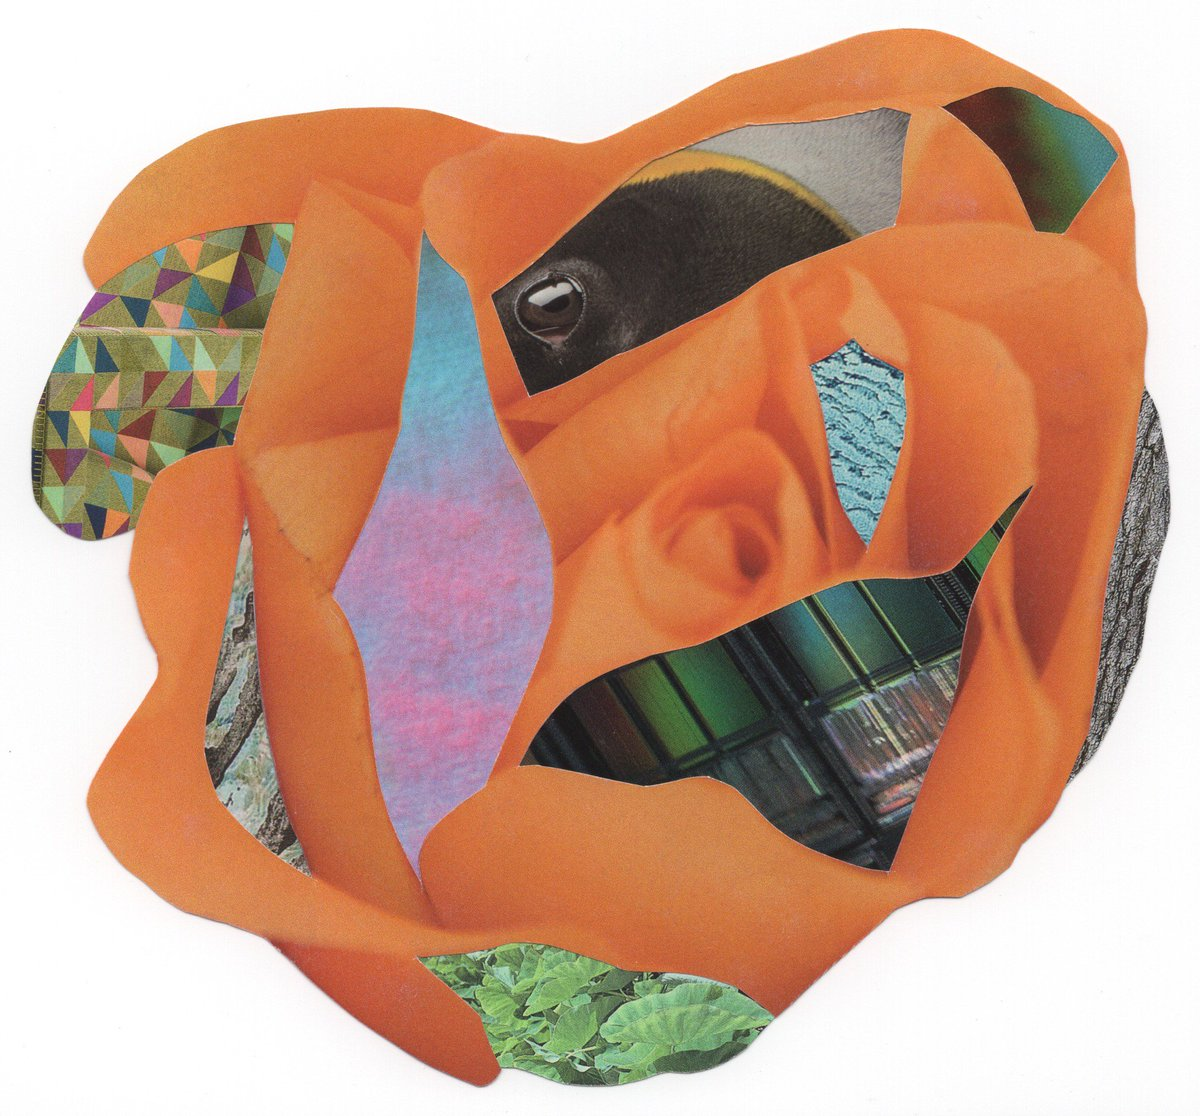 Scratch The Surface  10 pieces of paper. This handmade collage is on its way to Moscow where it will be planted in August alongside flora from collage artists from around the globe   Want to help grow the garden?  https:// bit.ly/2srJqx5  &nbsp;    #collagetheworld #thecollagegarden<br>http://pic.twitter.com/VhL7wWBhW7